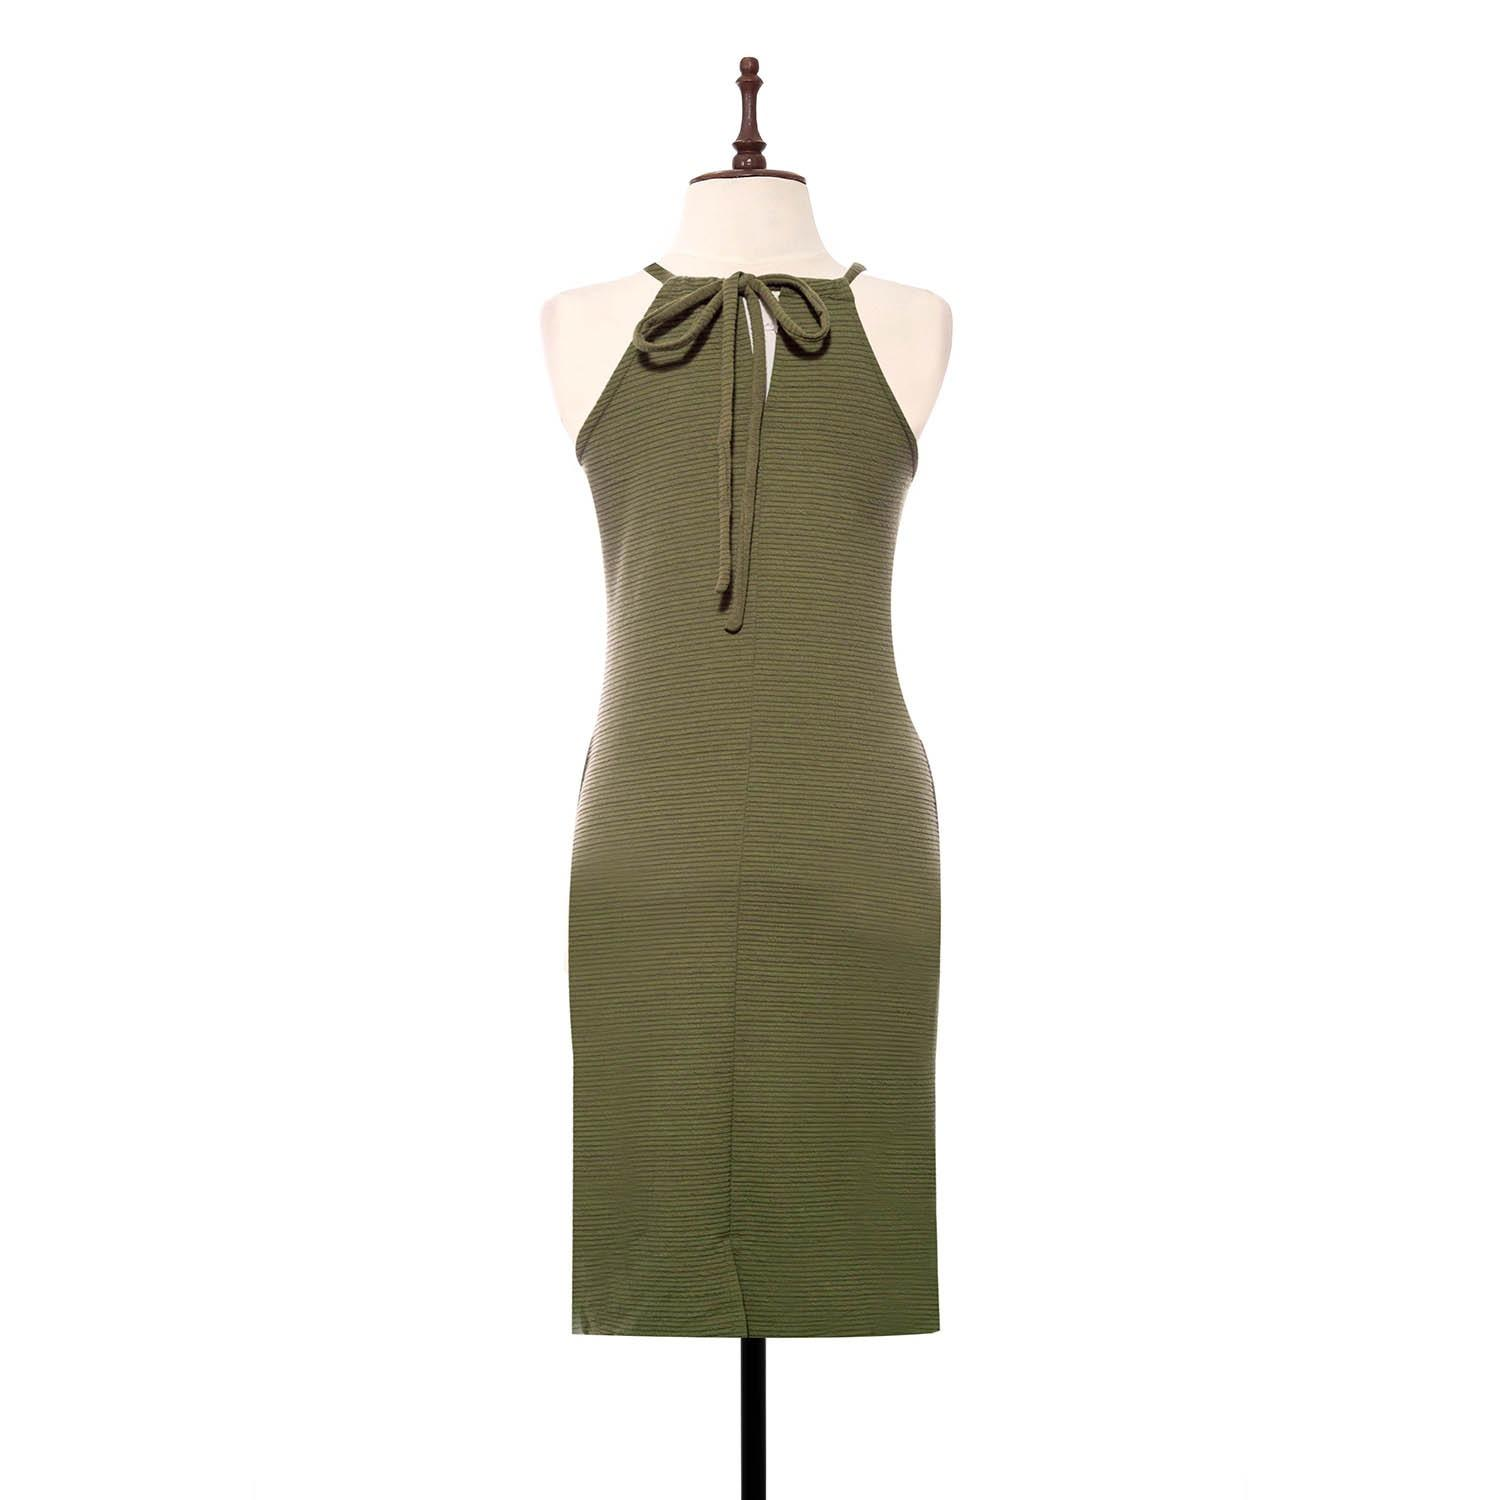 BLACK SHEEP Fitted Halter Dress in Textured Knit in Green